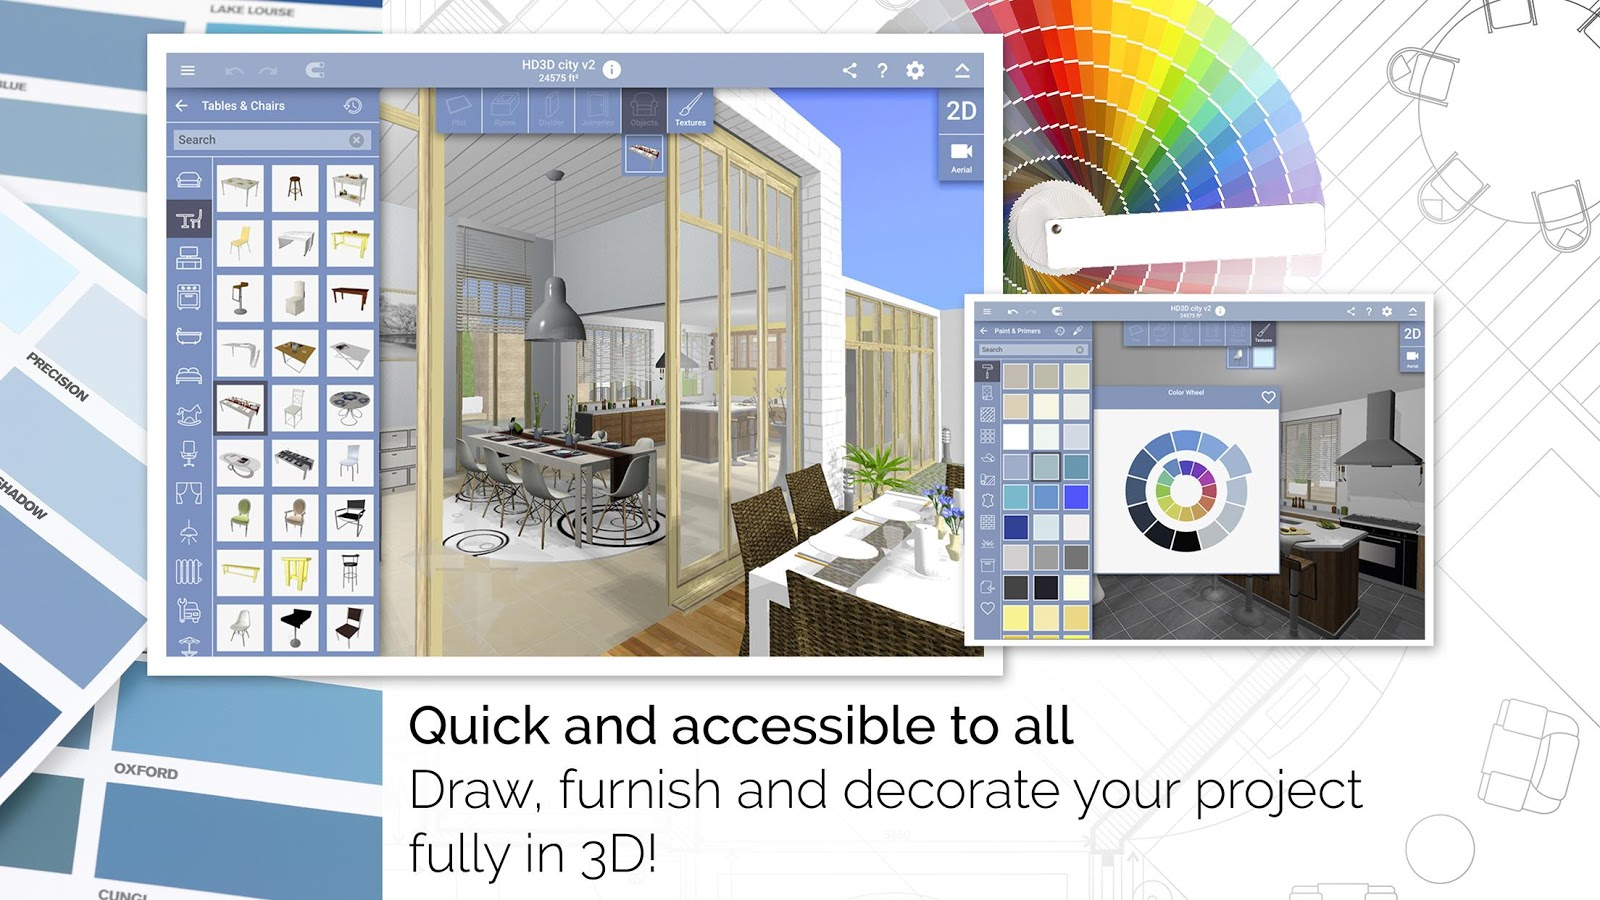 Home design 3d freemium android apps on google play for Create 3d home design online